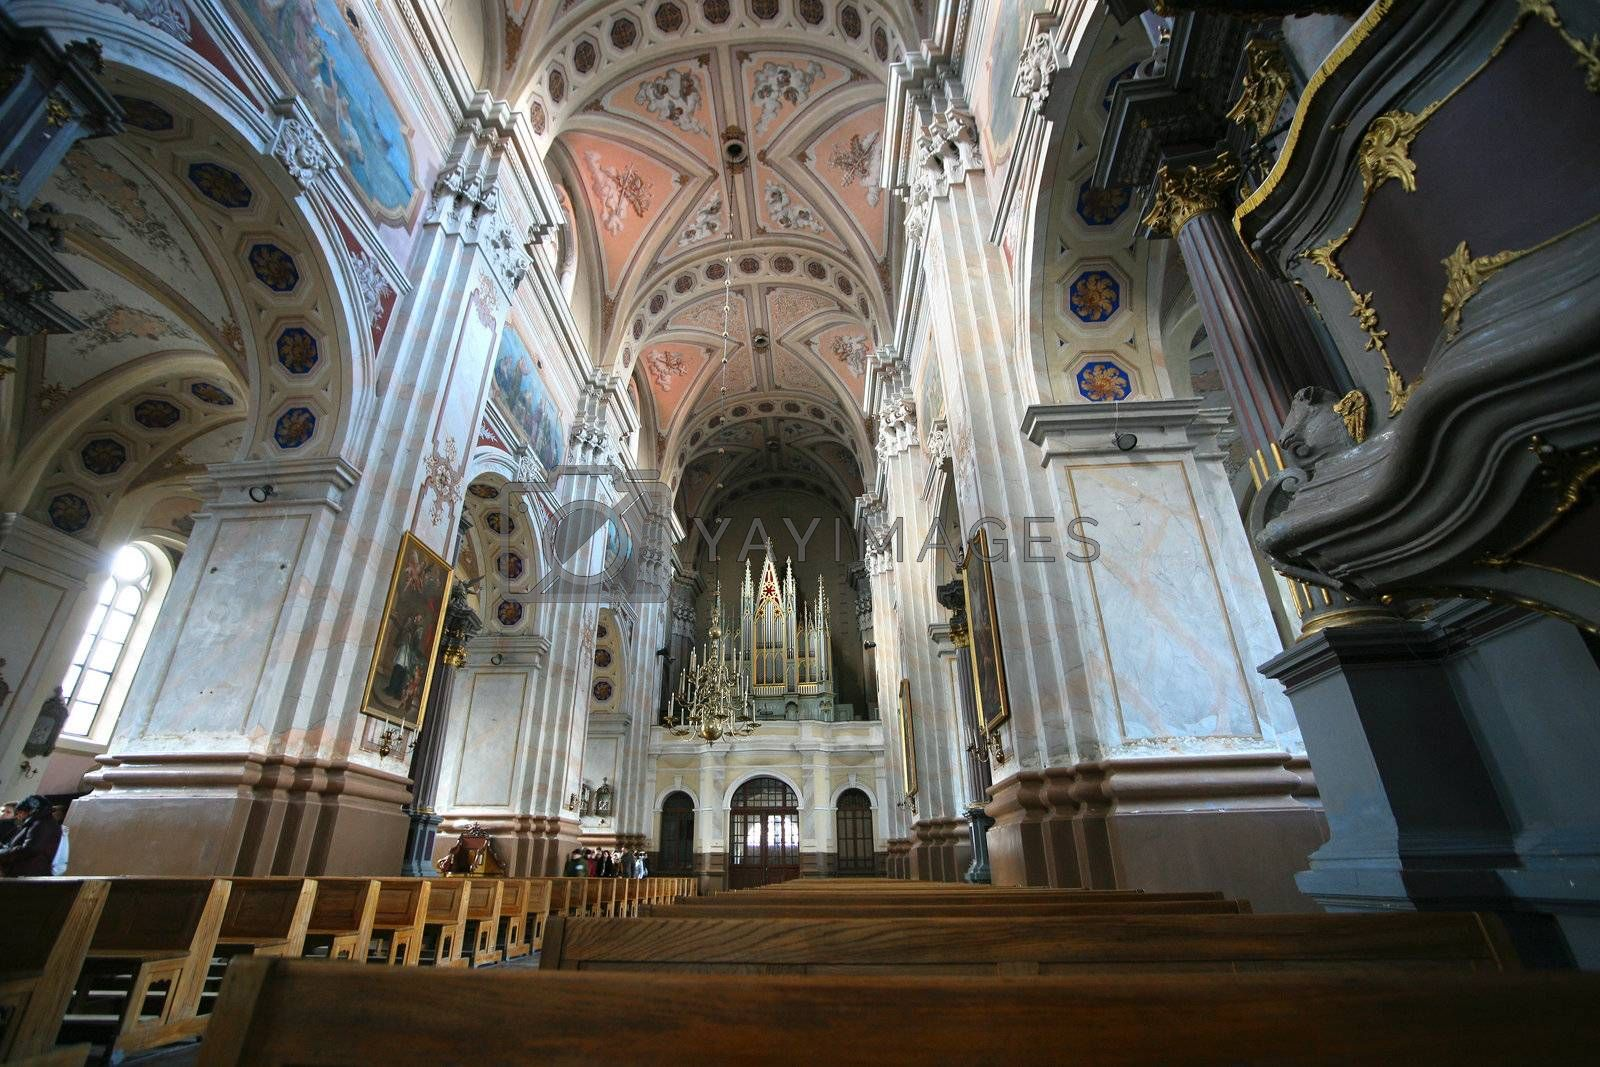 View inside the Cathedral. Kaunas